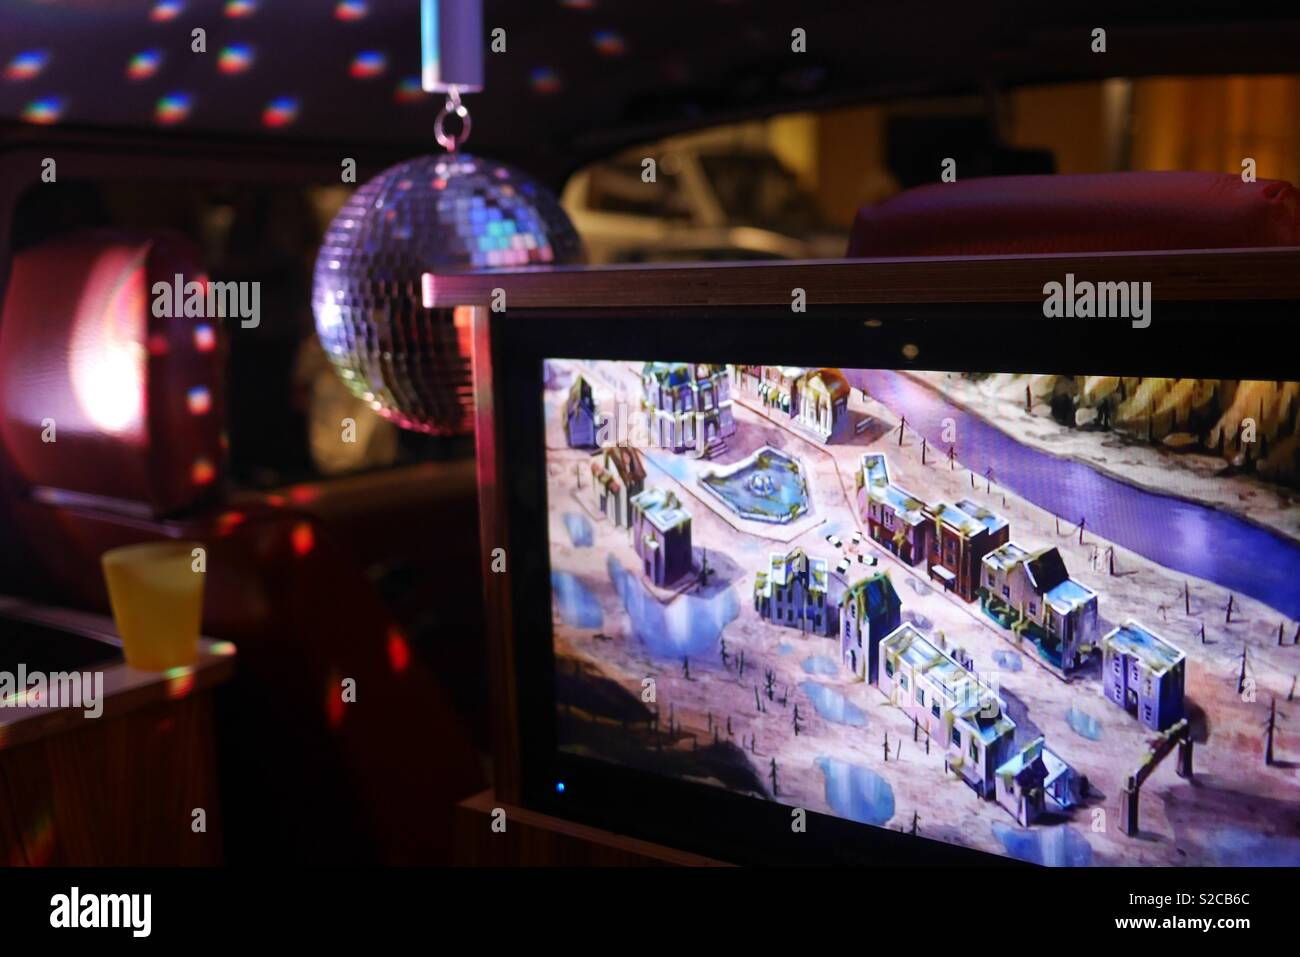 Vw van interior with tv screen dvd and disco ball at Greenwich Market car event - Stock Image